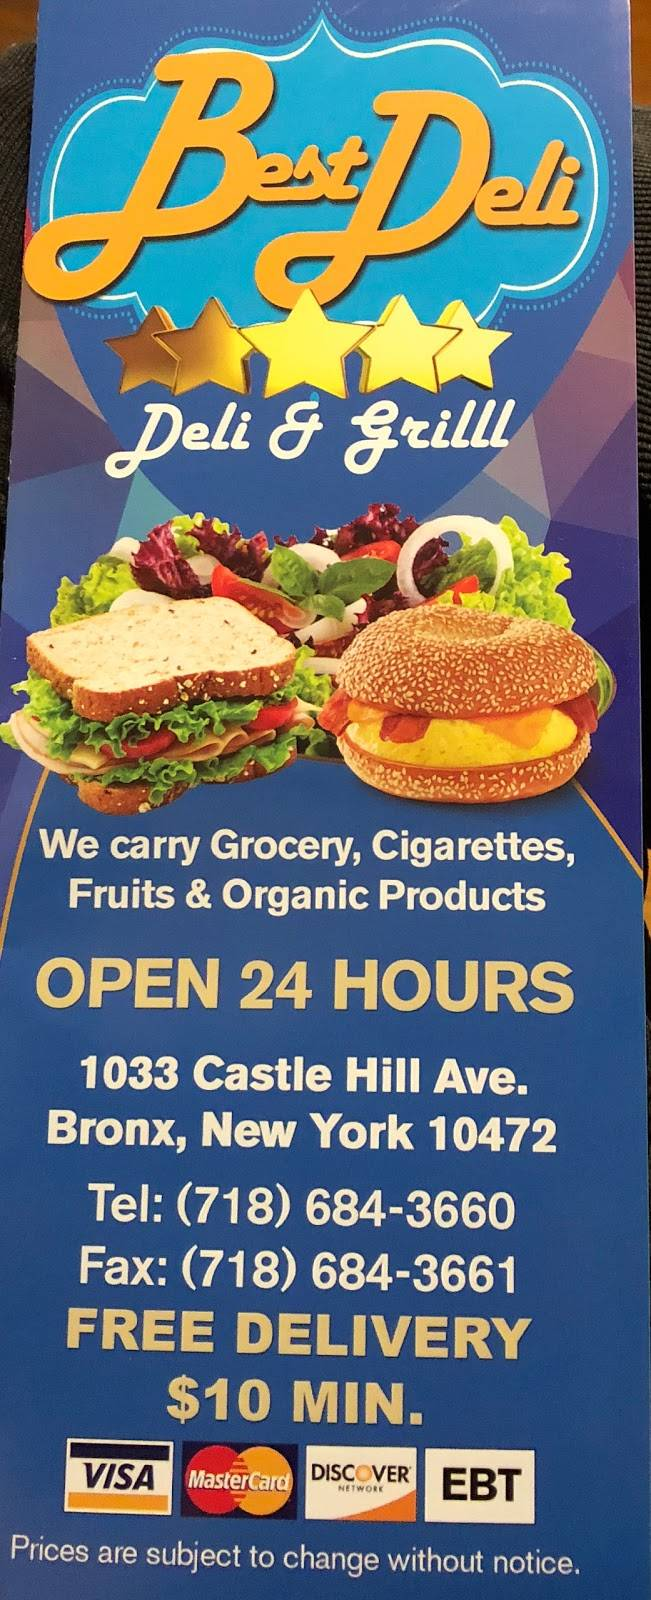 Best Deli & Grill | restaurant | 1033 Castle Hill Ave, Bronx, NY 10472, USA | 7186843660 OR +1 718-684-3660